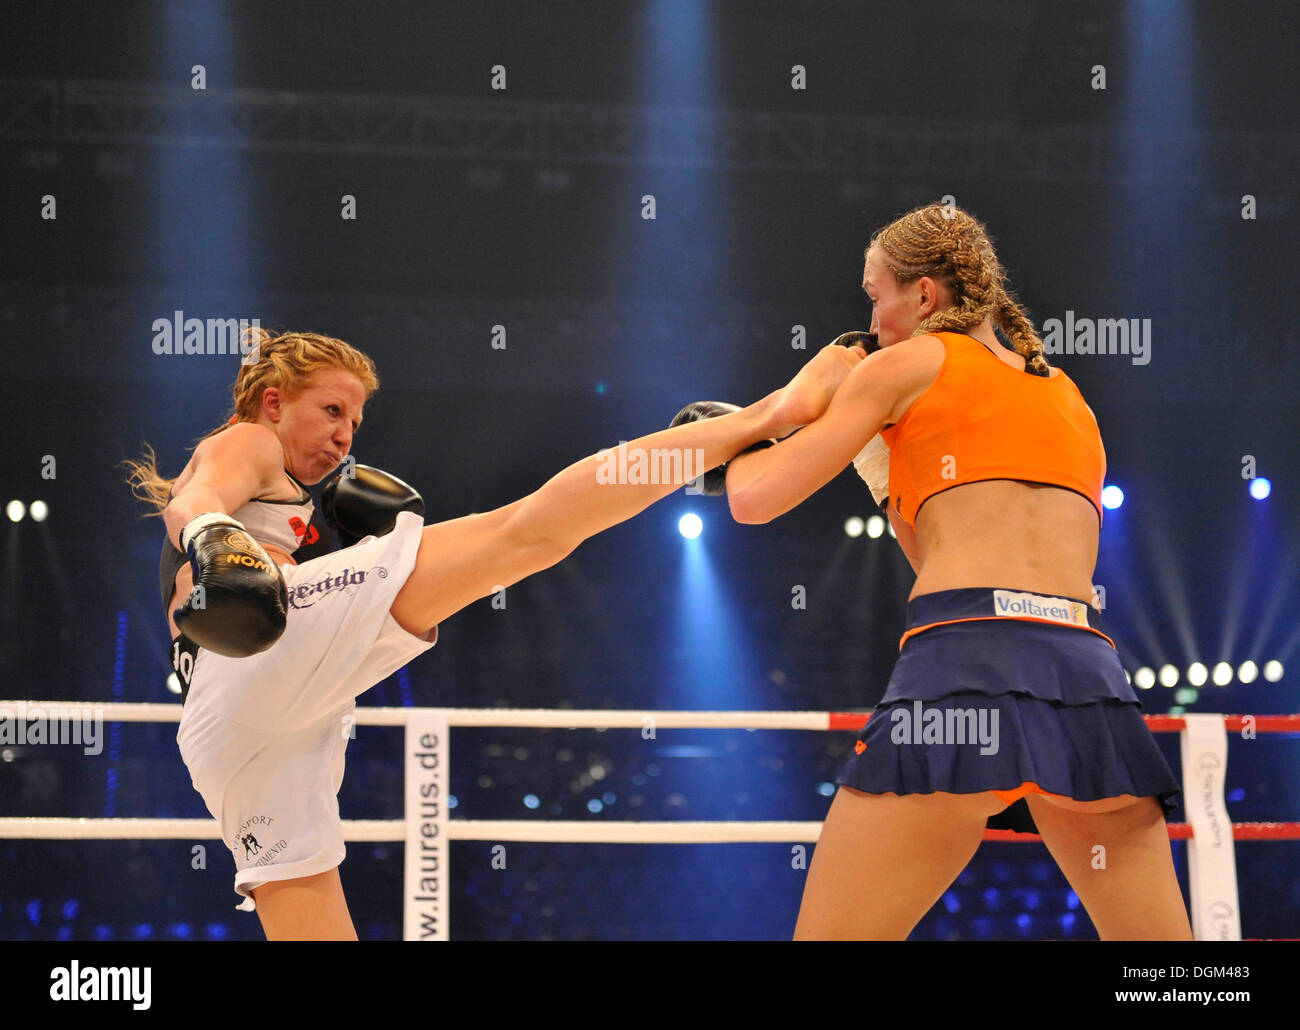 Christine Theiss, German kickboxing world champion, black shorts, vs Paola Capucci, Italy, white shorts - Stock Image